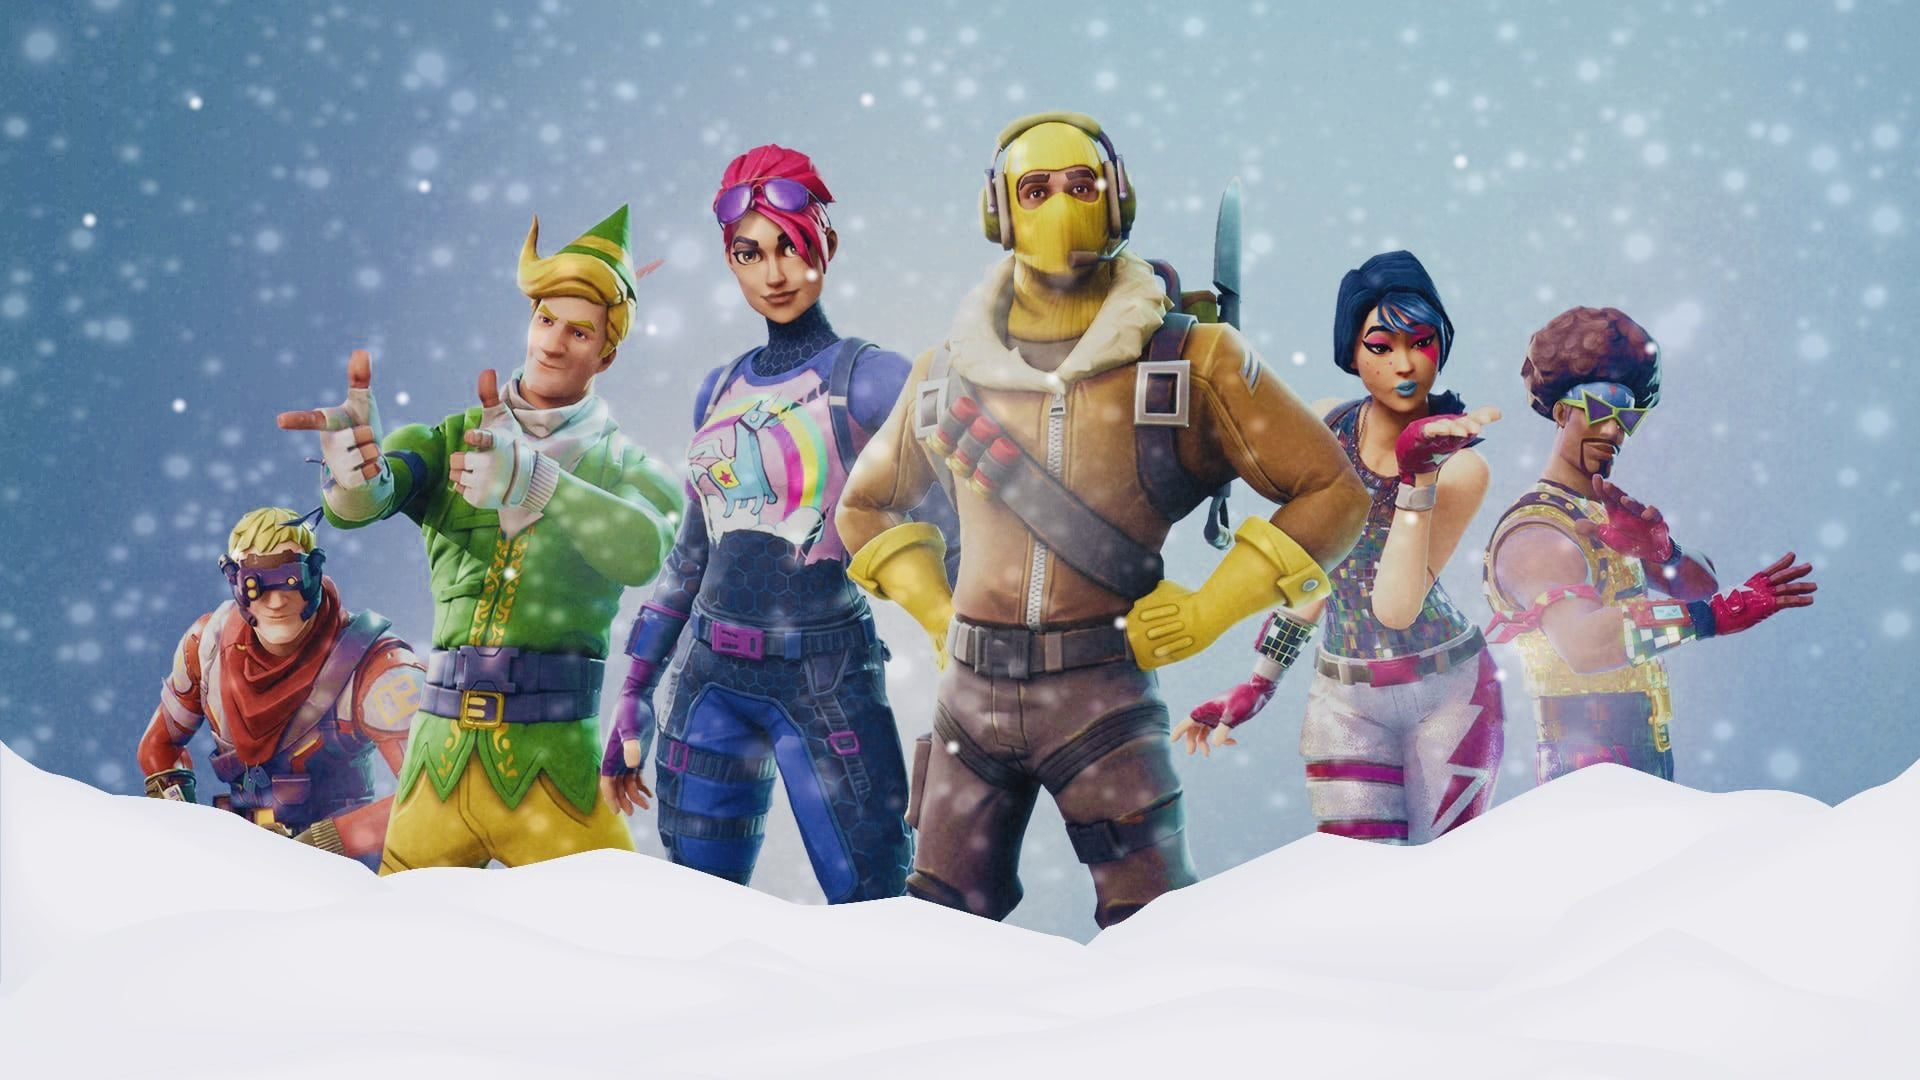 Christmas Fortnite Battle Royale Wallpapers - Top Free ...